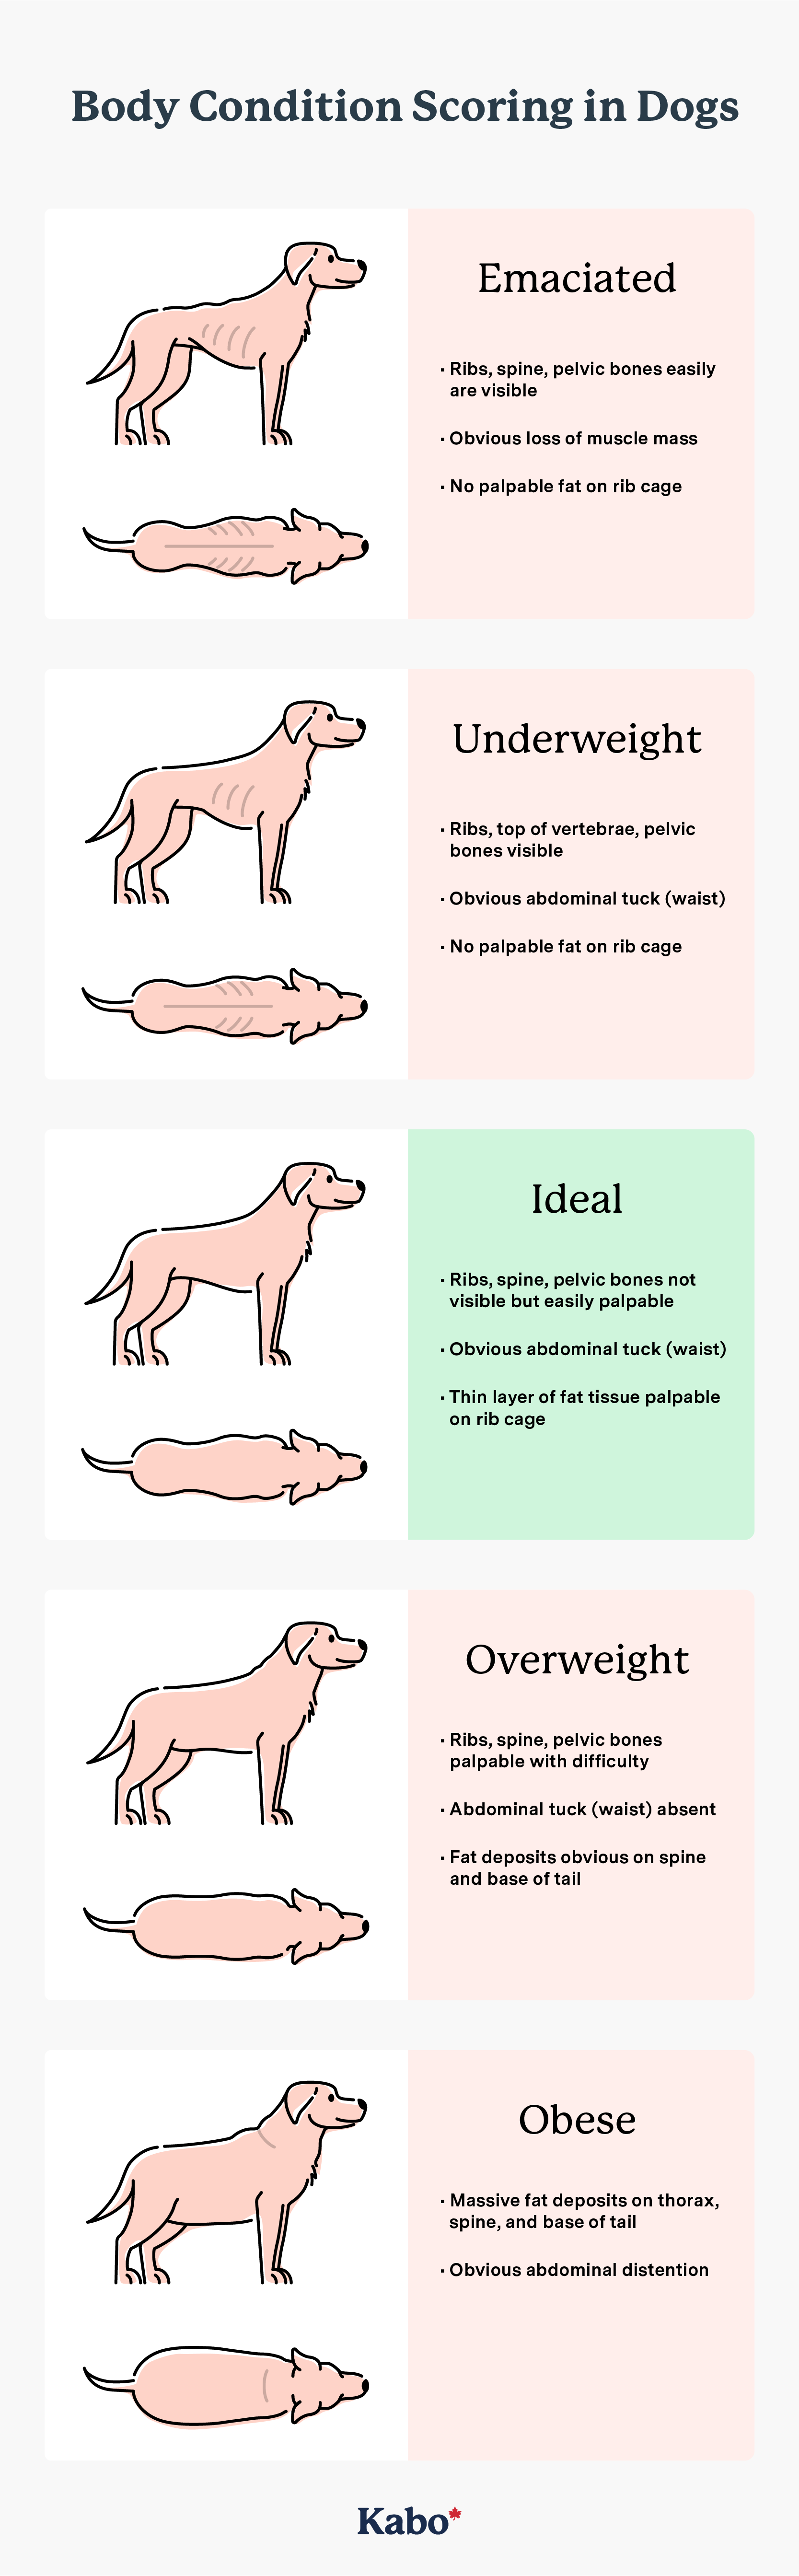 Body condition scoring in dogs graphic illustration defining underweight ideal overweight and obese dogs